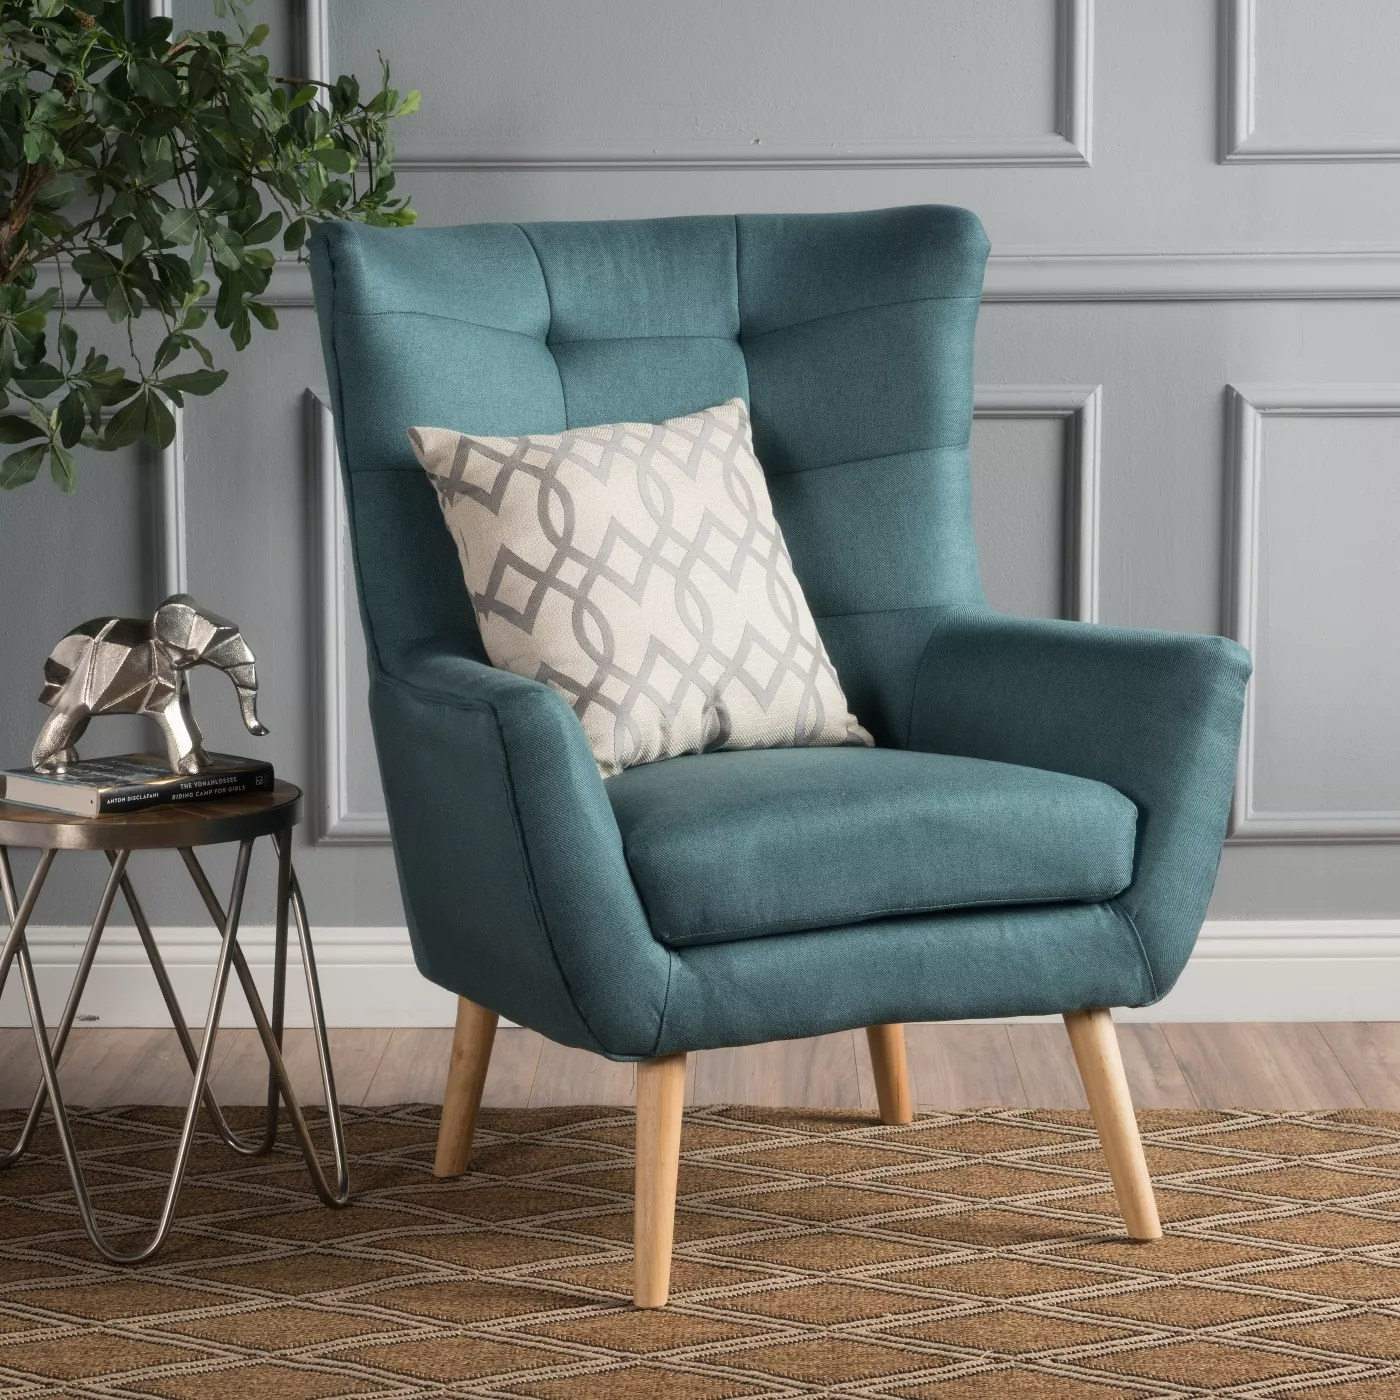 The chair in dark teal